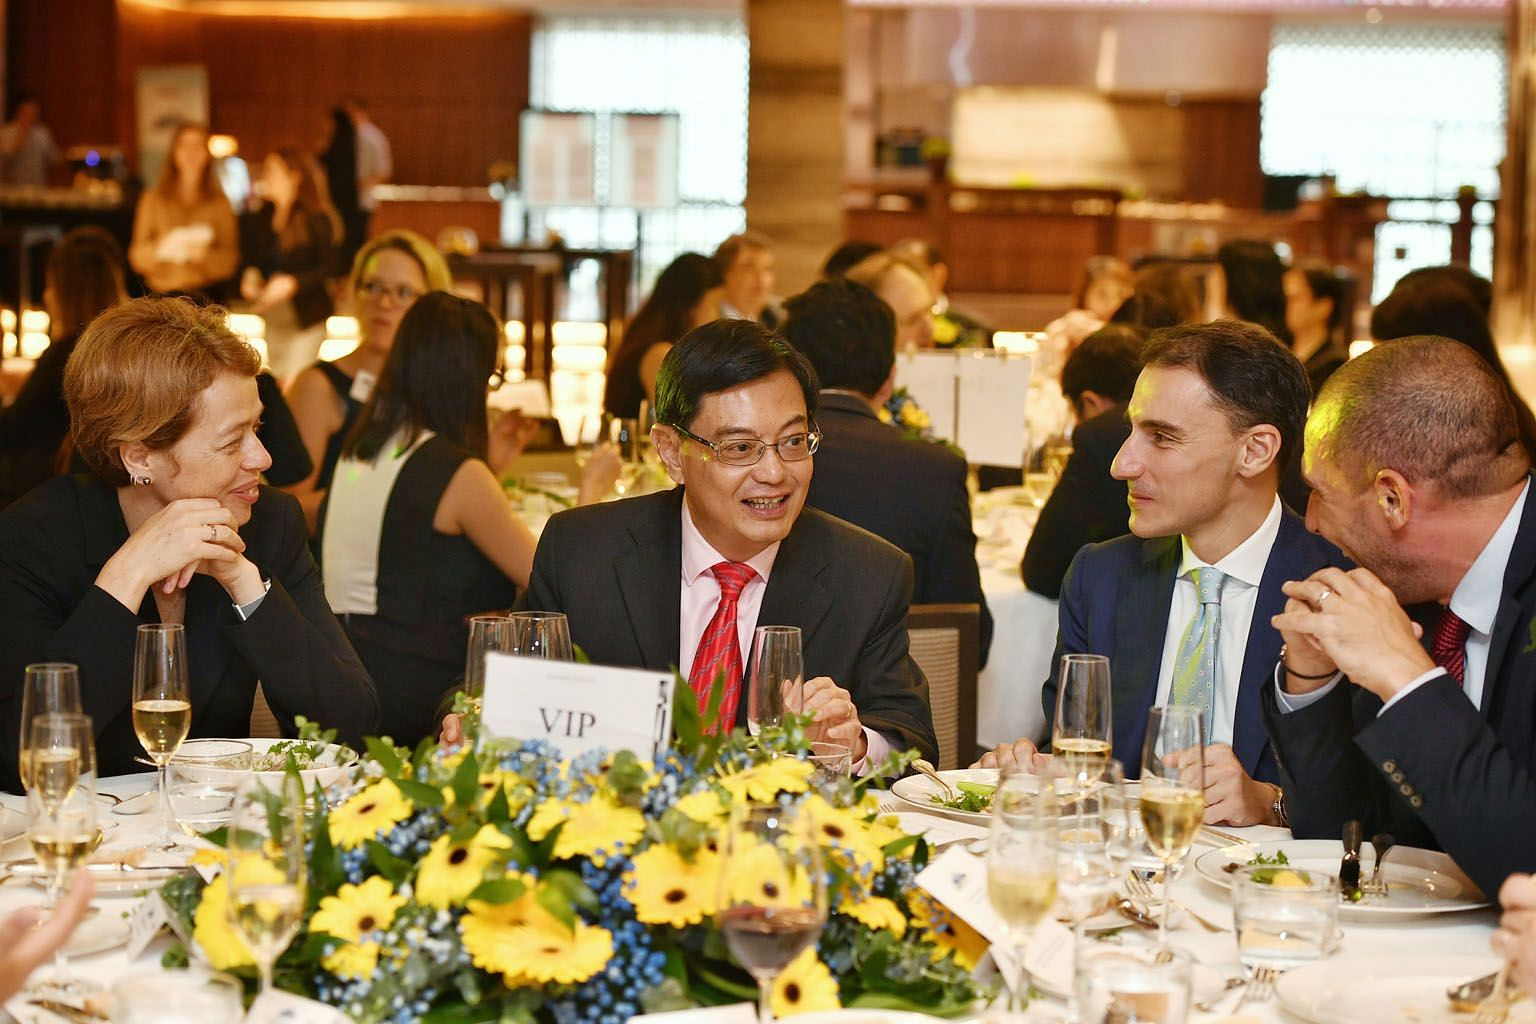 Deputy Prime Minister Heng Swee Keat with EU Ambassador to Singapore Barbara Plinkert, European Chamber of Commerce president Federico Donato and Pernod Ricard Singapore's managing director Cedric Retailleau (far right) at the Europe Day luncheon att